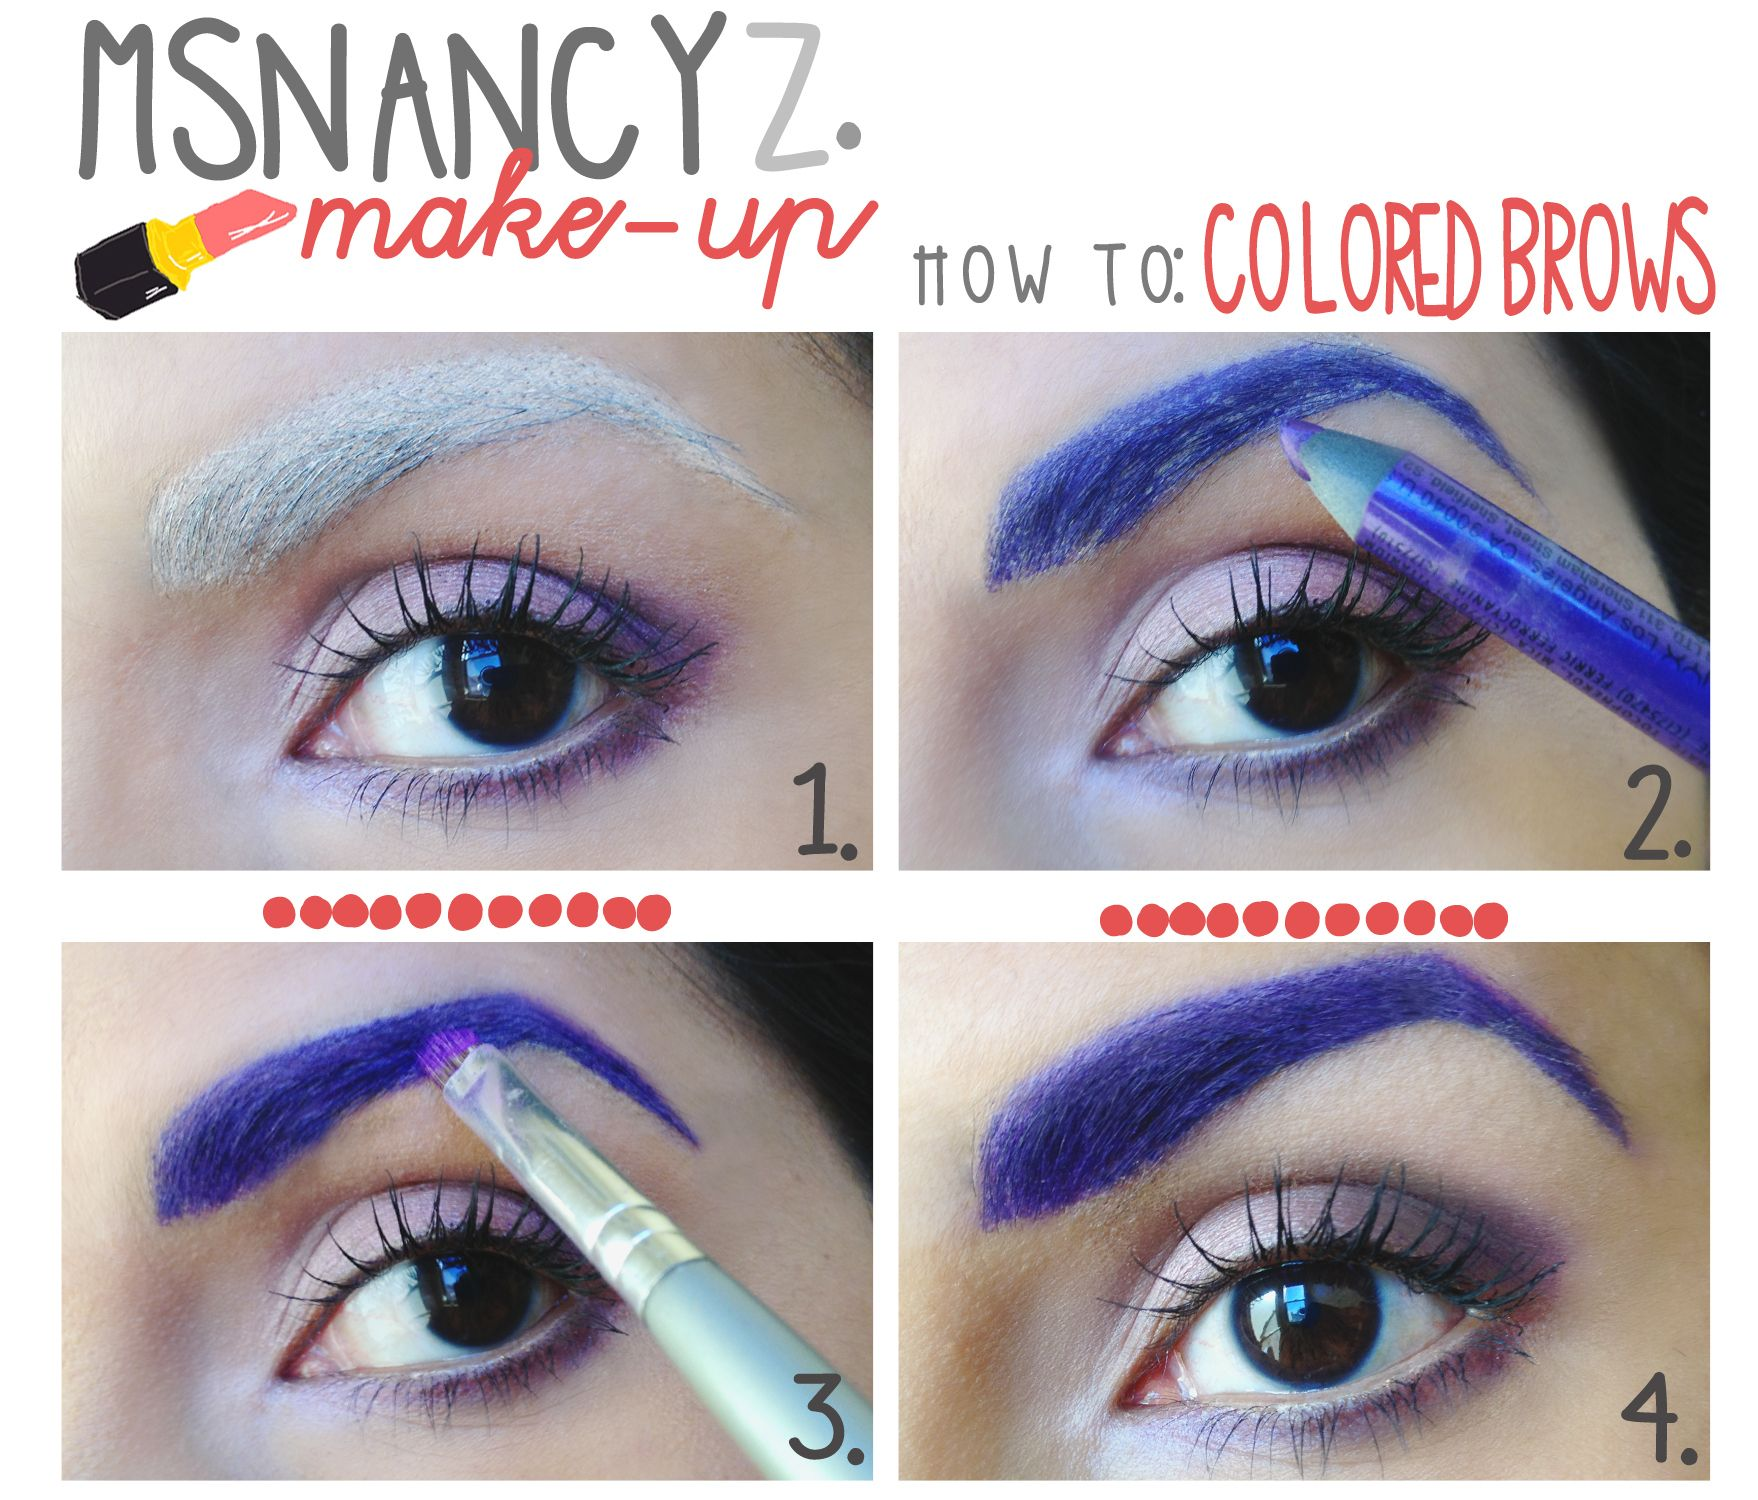 Colored brows halloween doodle thoughts pinterest brows makeup ideas colored brows eyebrow tutorialanime makeup baditri Choice Image